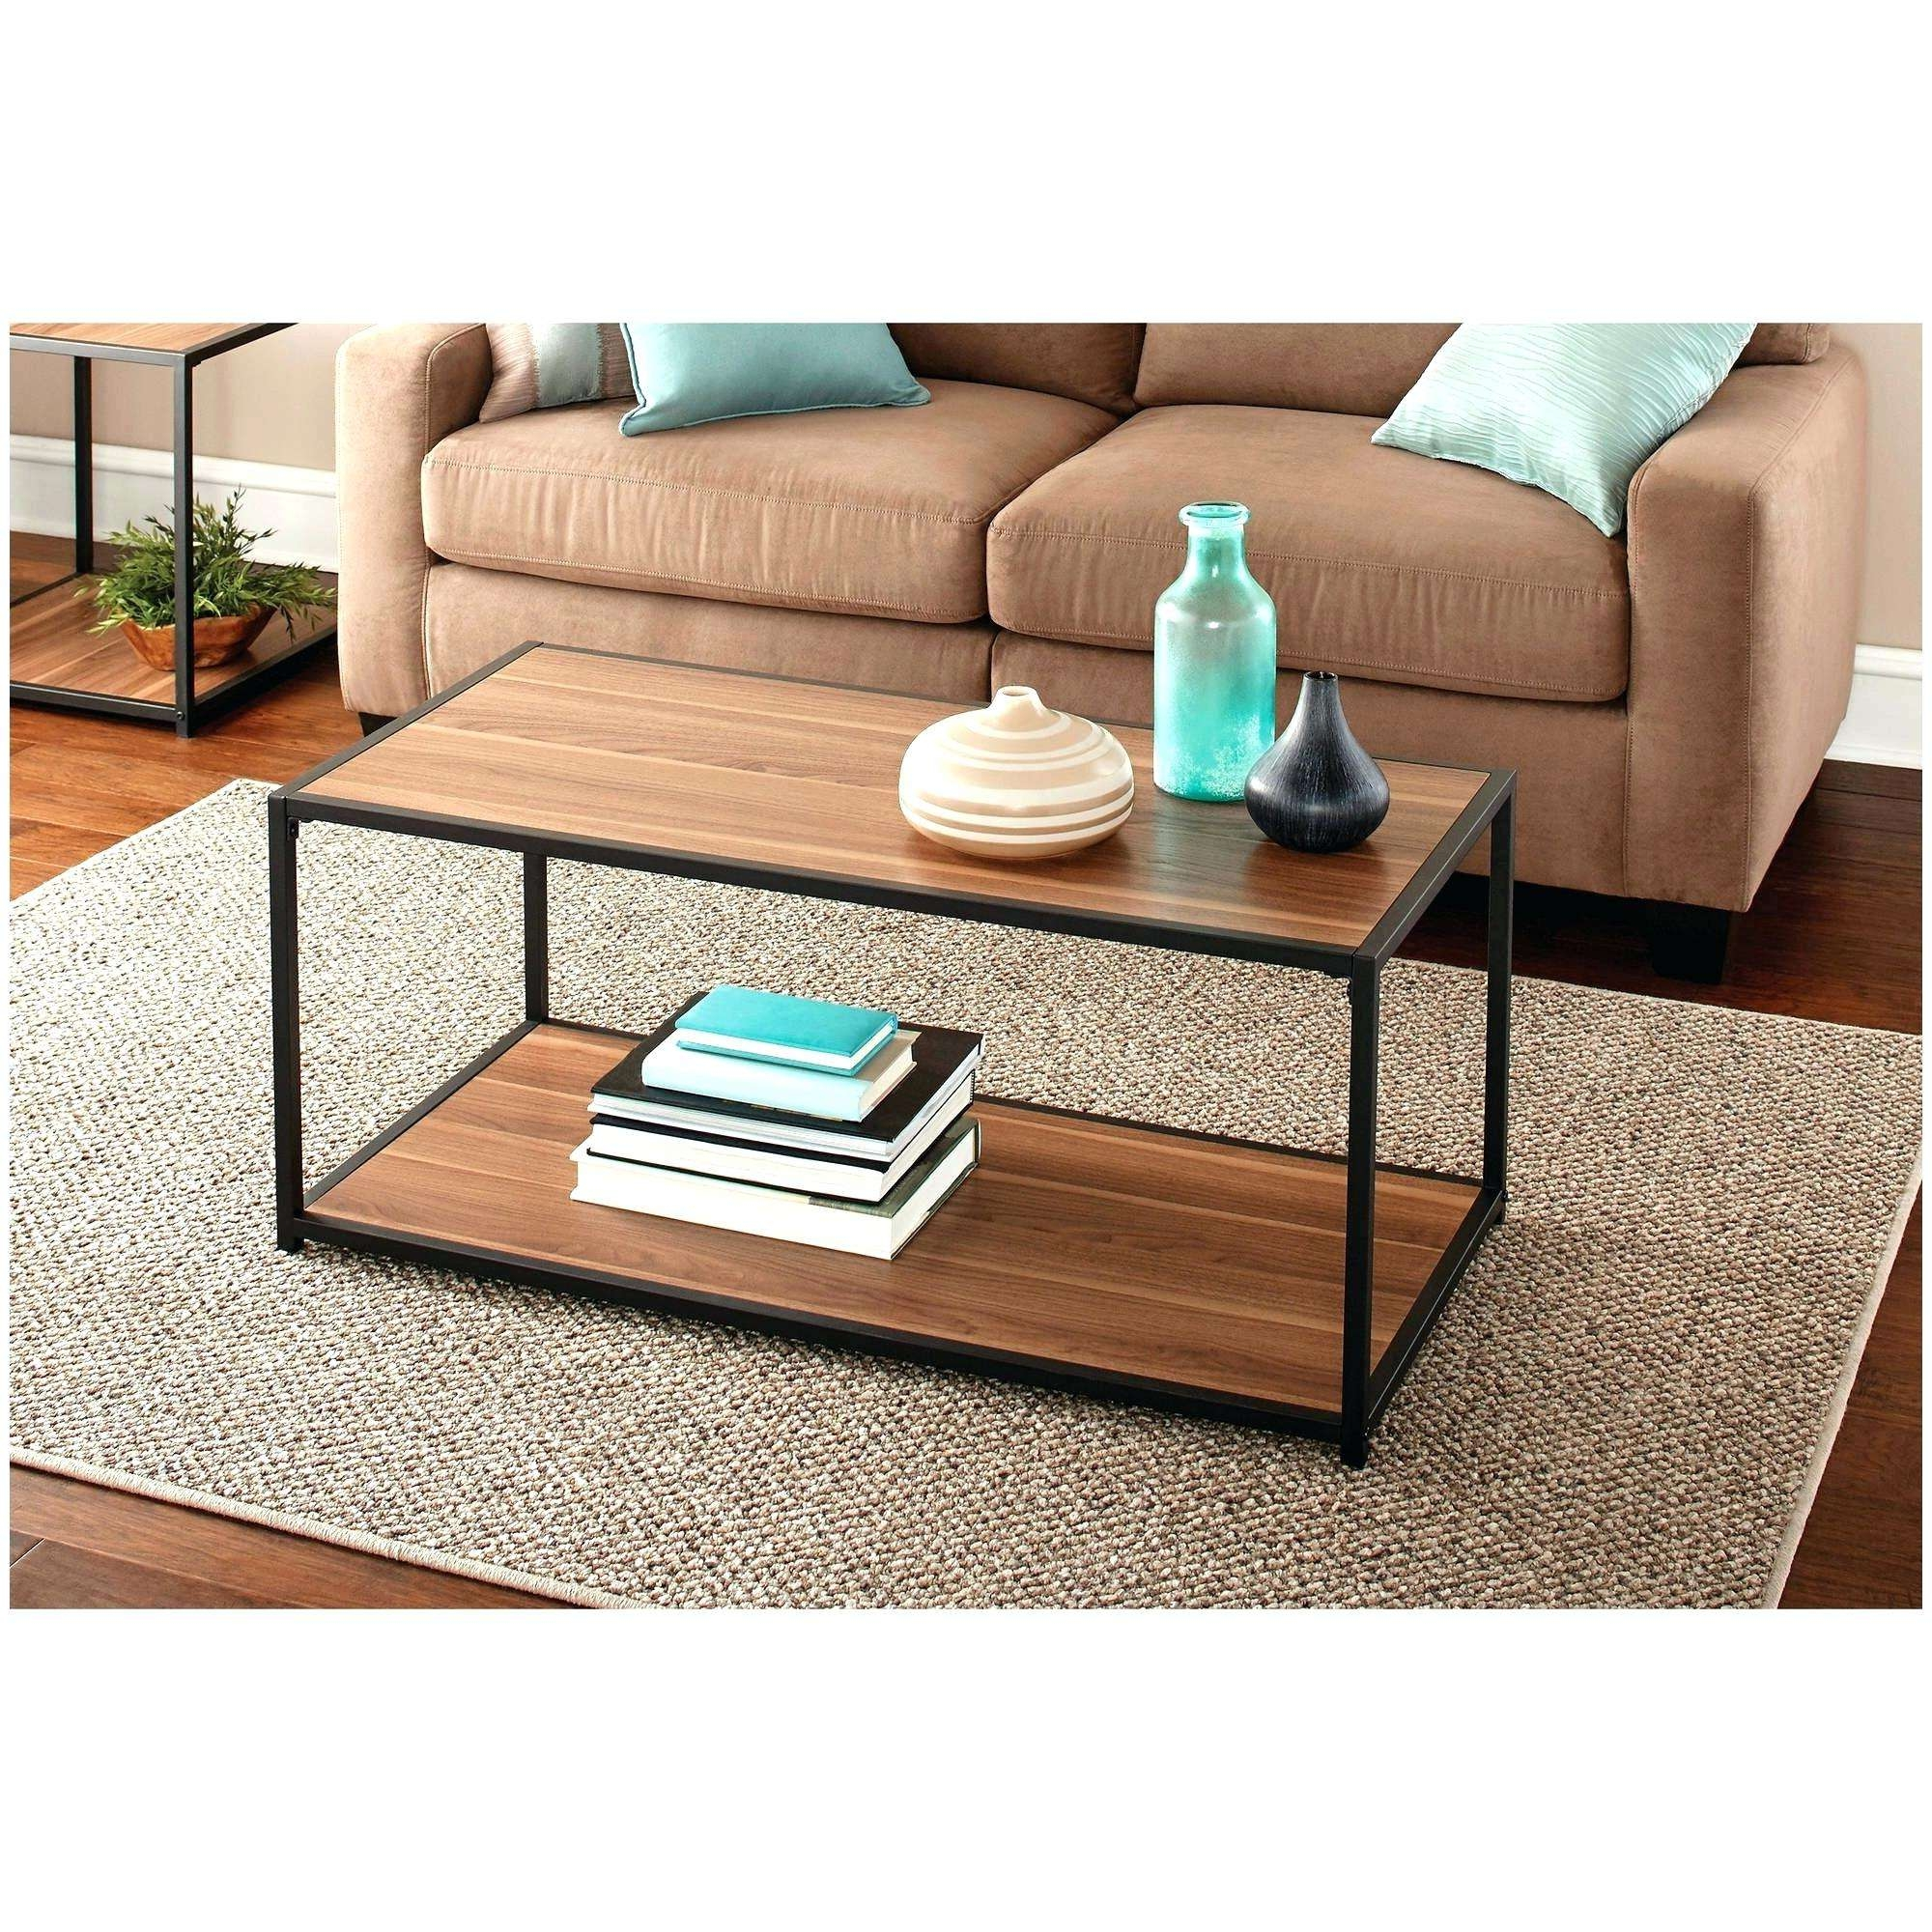 2018 Baby Proof Coffee Tables Corners With Regard To How To Baby Proof Coffee Table For Tables Corners Photo Of Can I (View 9 of 20)